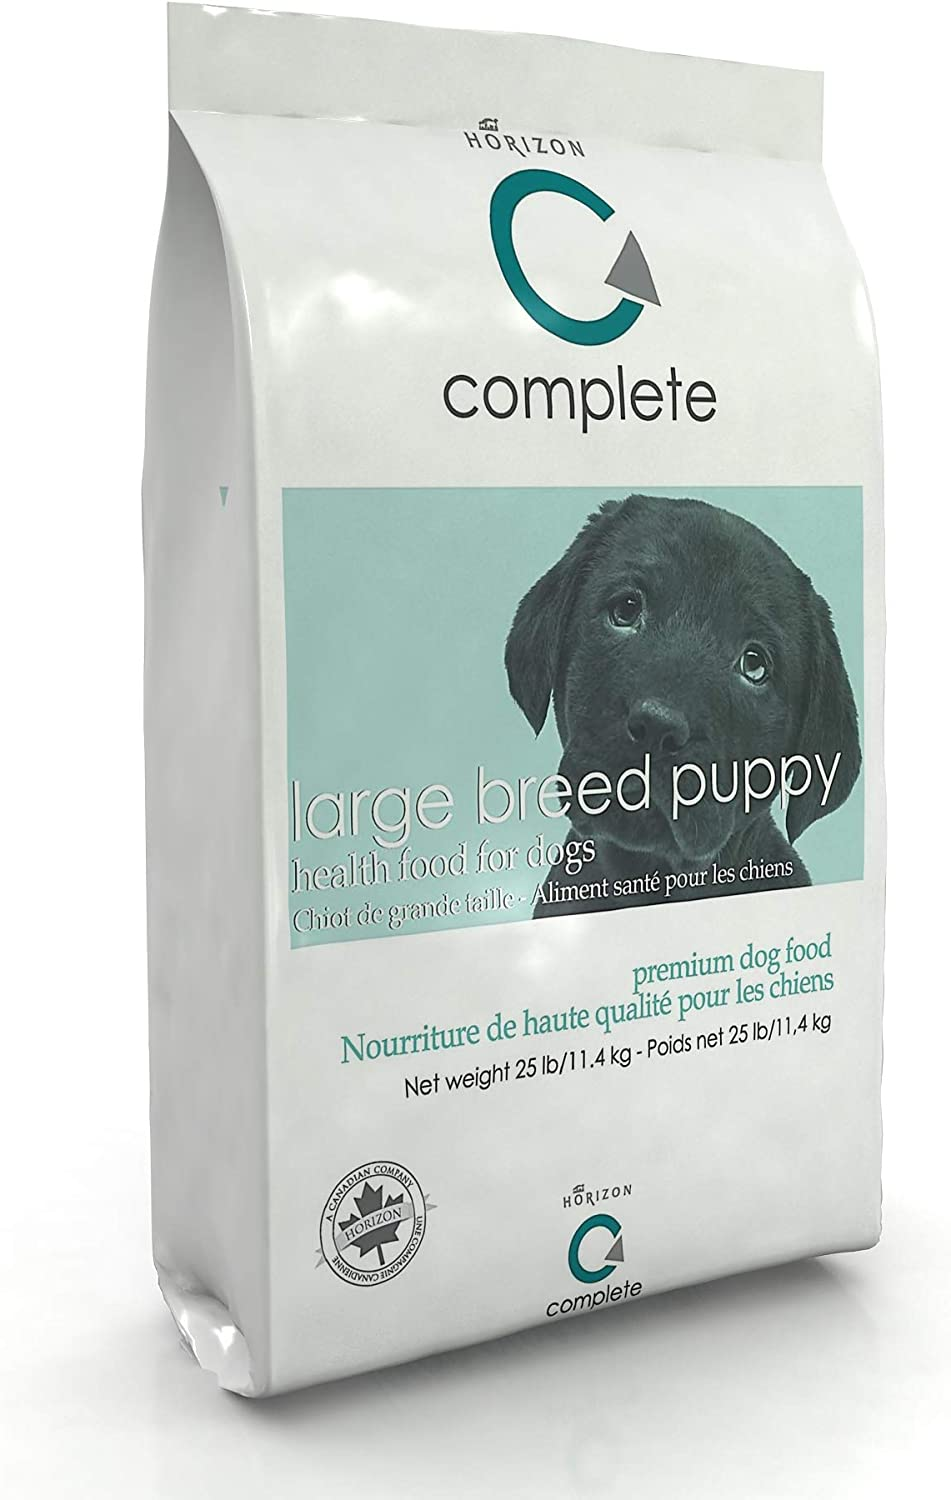 Horizon Complete Large Breed Puppy - 25 Lb